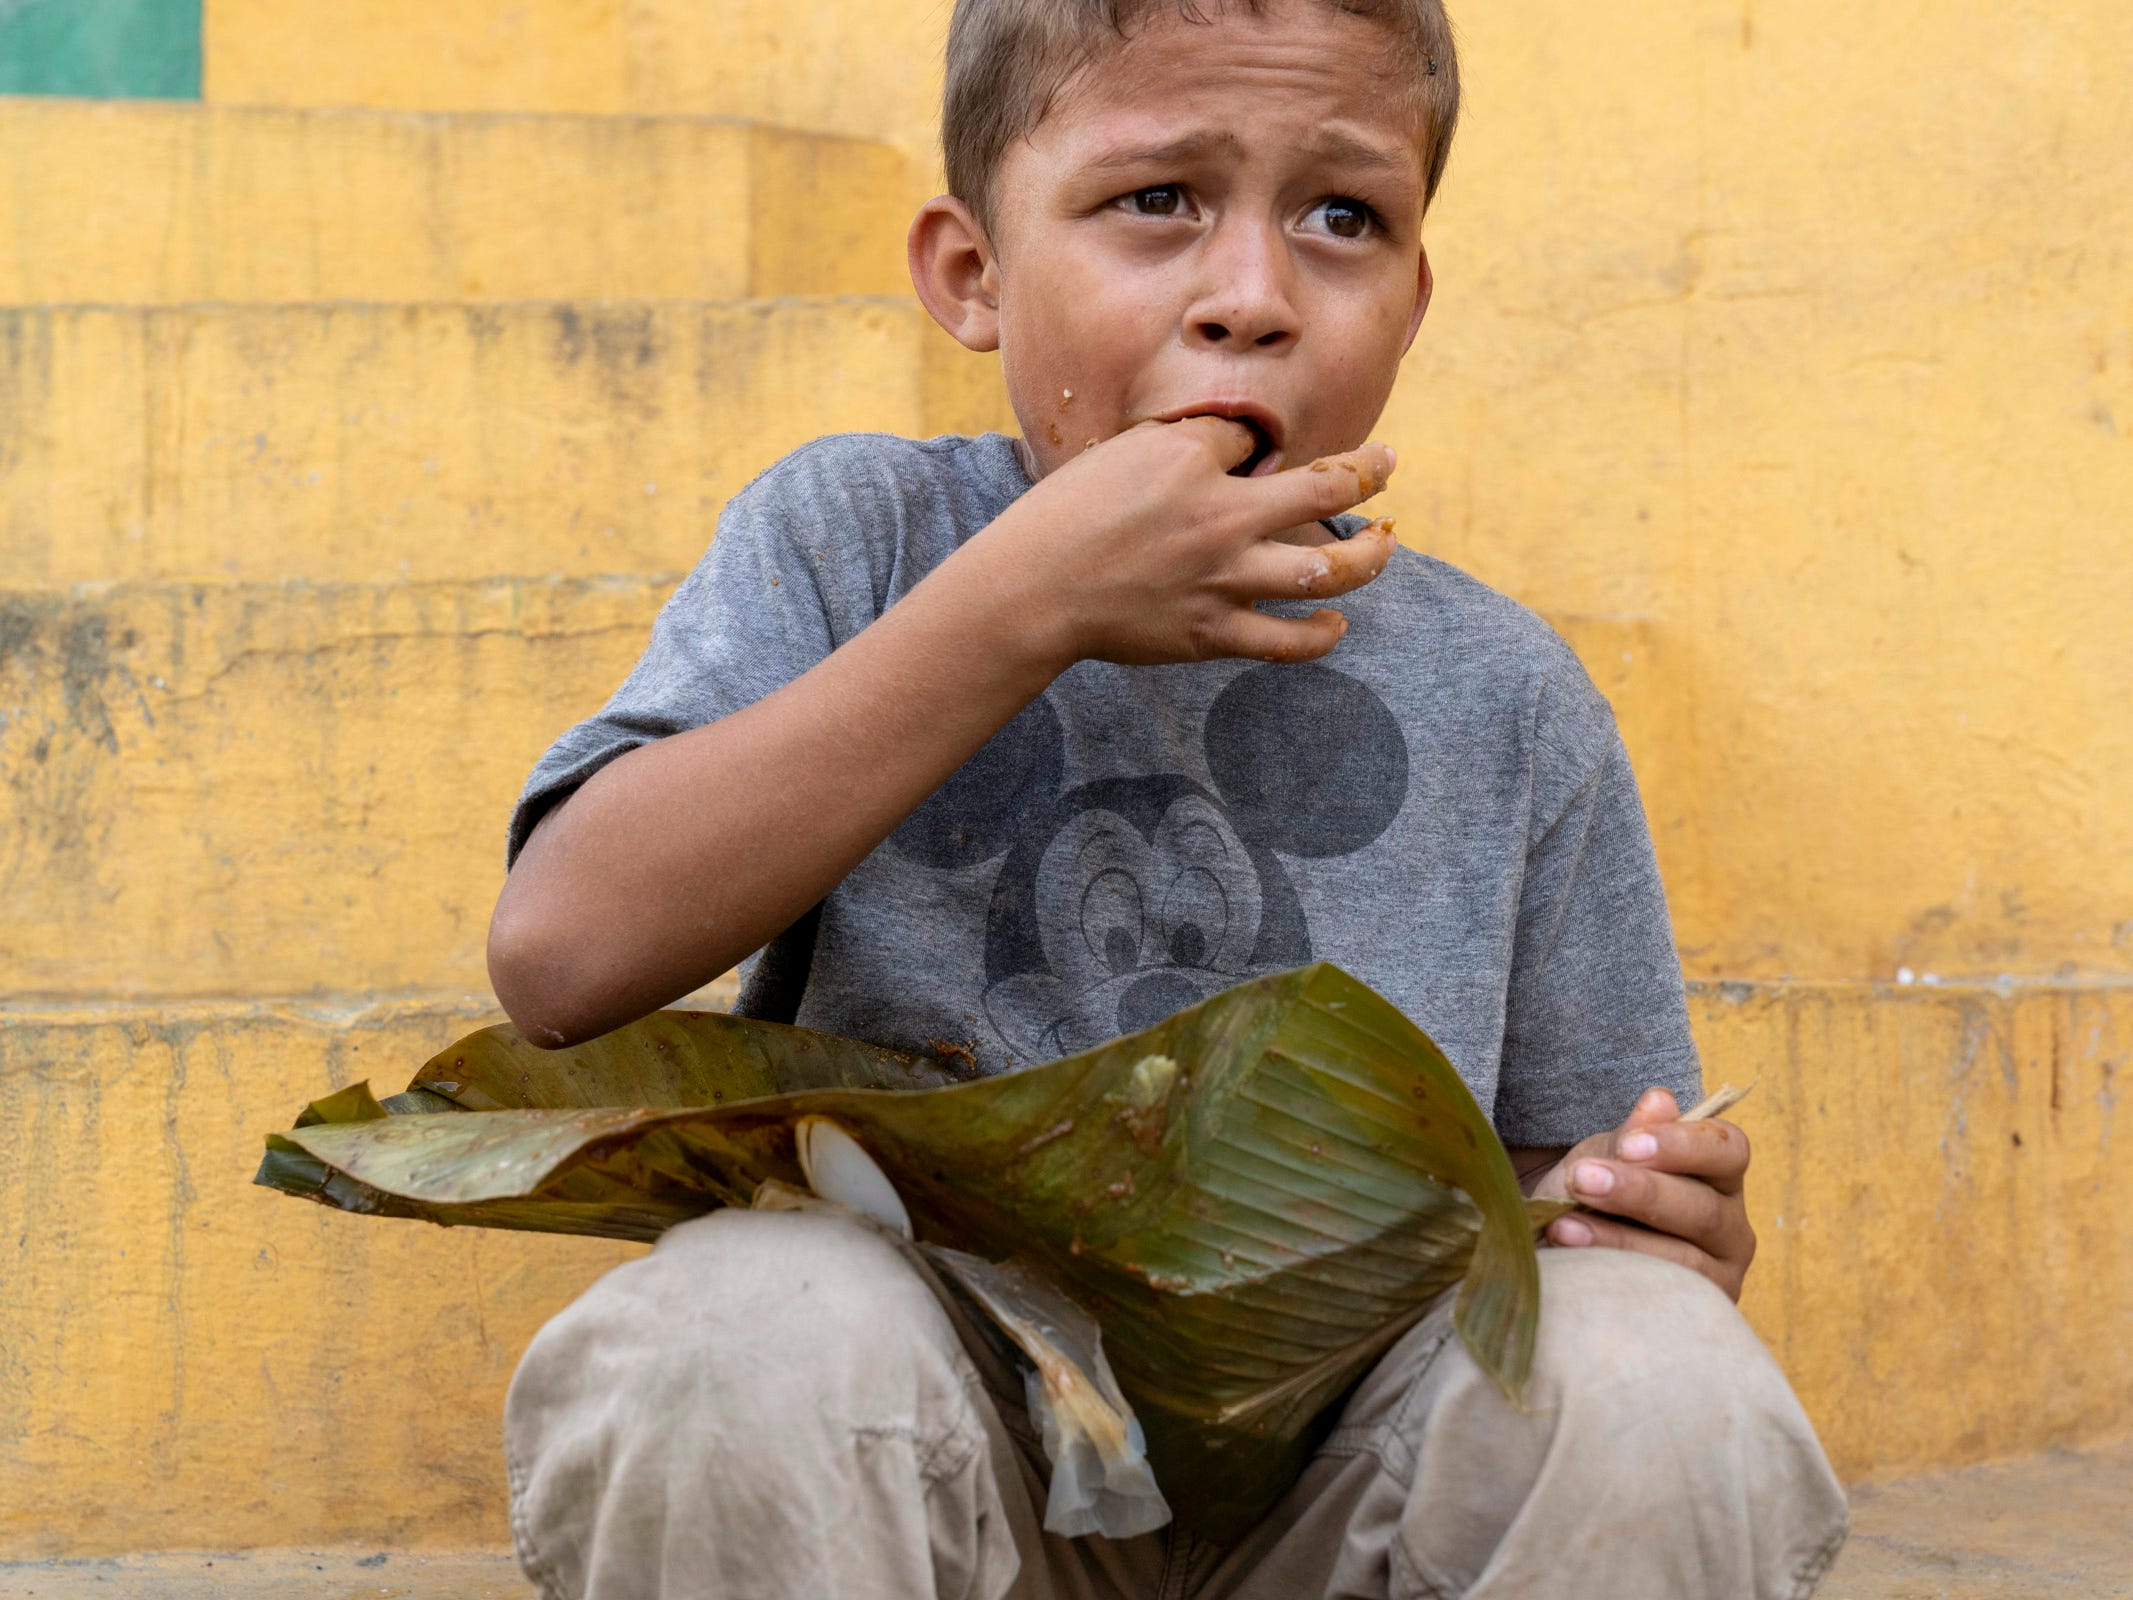 Gerson de Jesus Zelaya, 6, from Honduras, eats a donated lunch near a park in Tecum Uman, Guatemala as he waits to cross from Guatemala to Mexico and to head north to the United States on Oct 25, 2018.